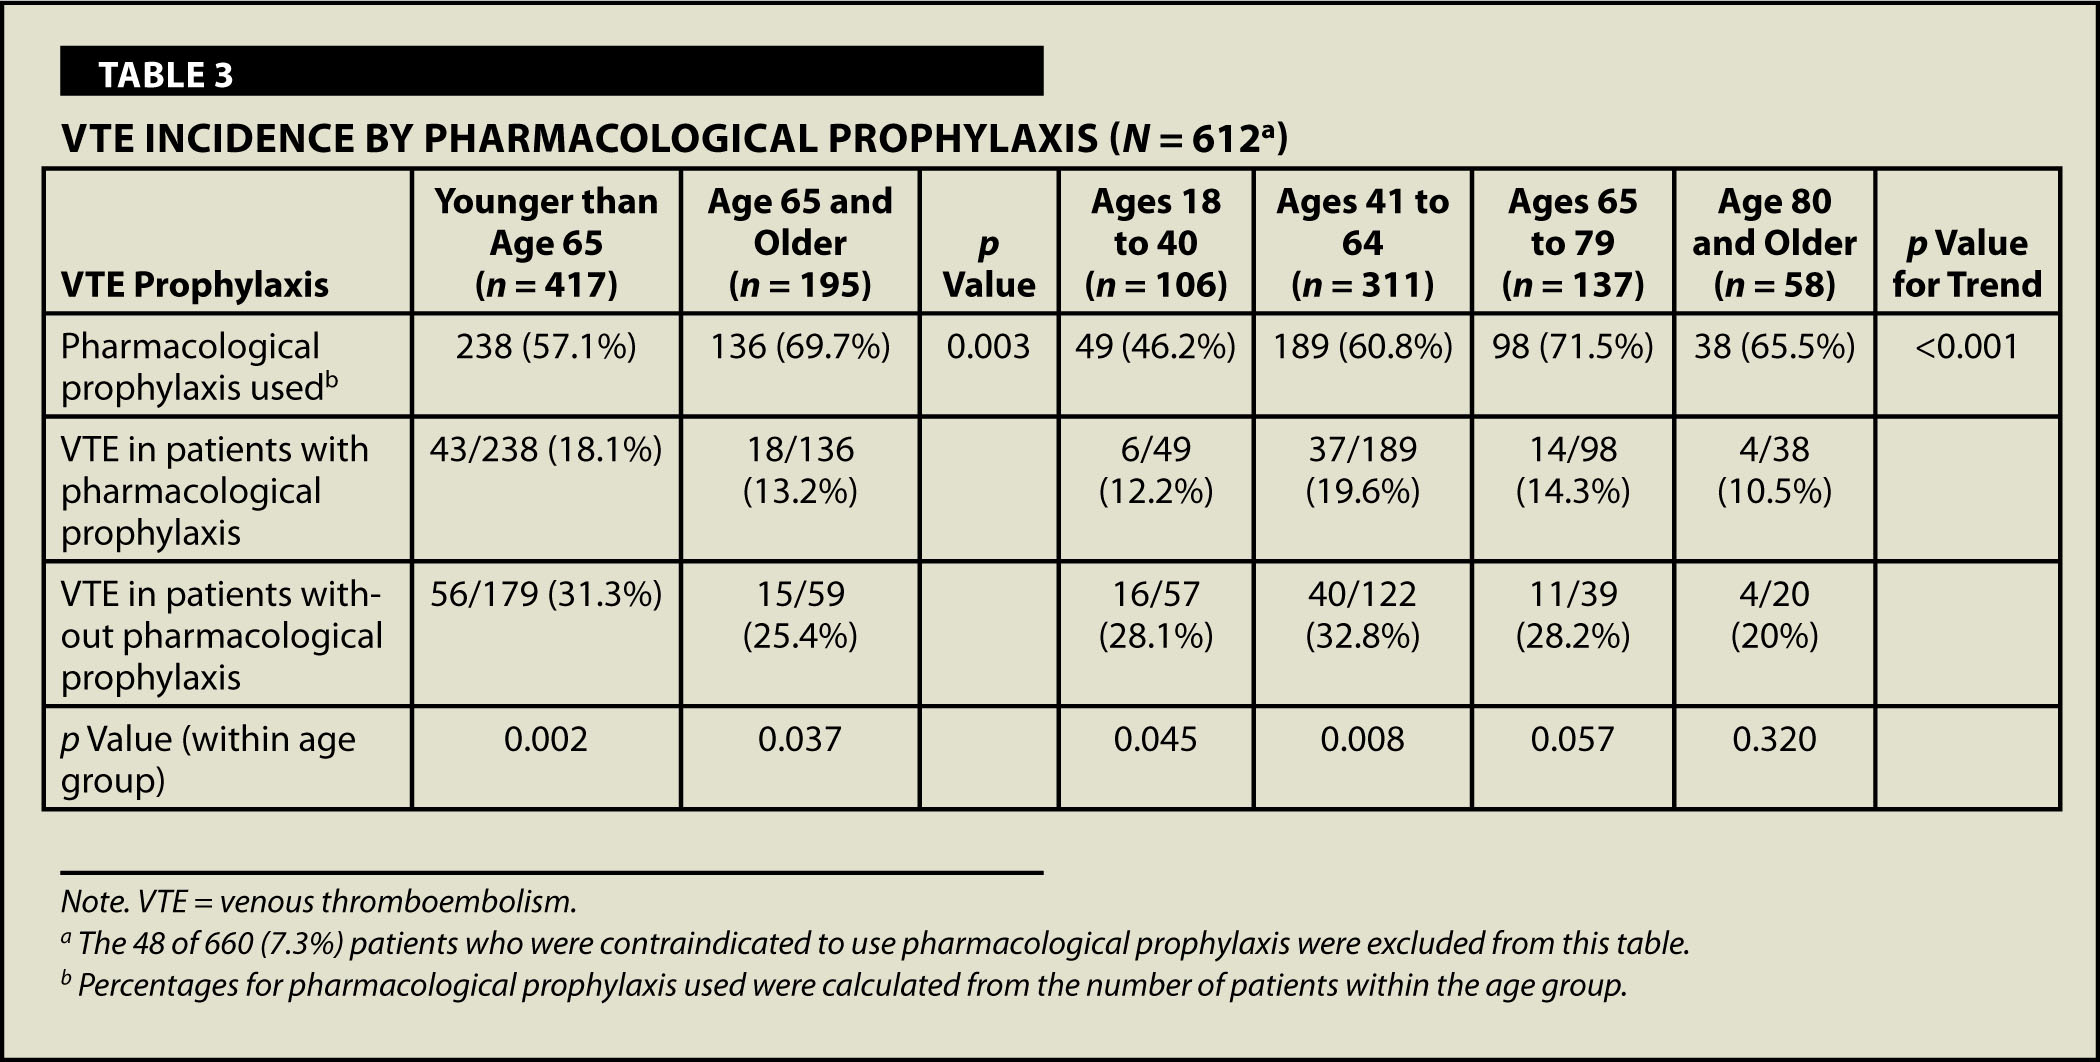 VTE Incidence by Pharmacological Prophylaxis (N = 612a)